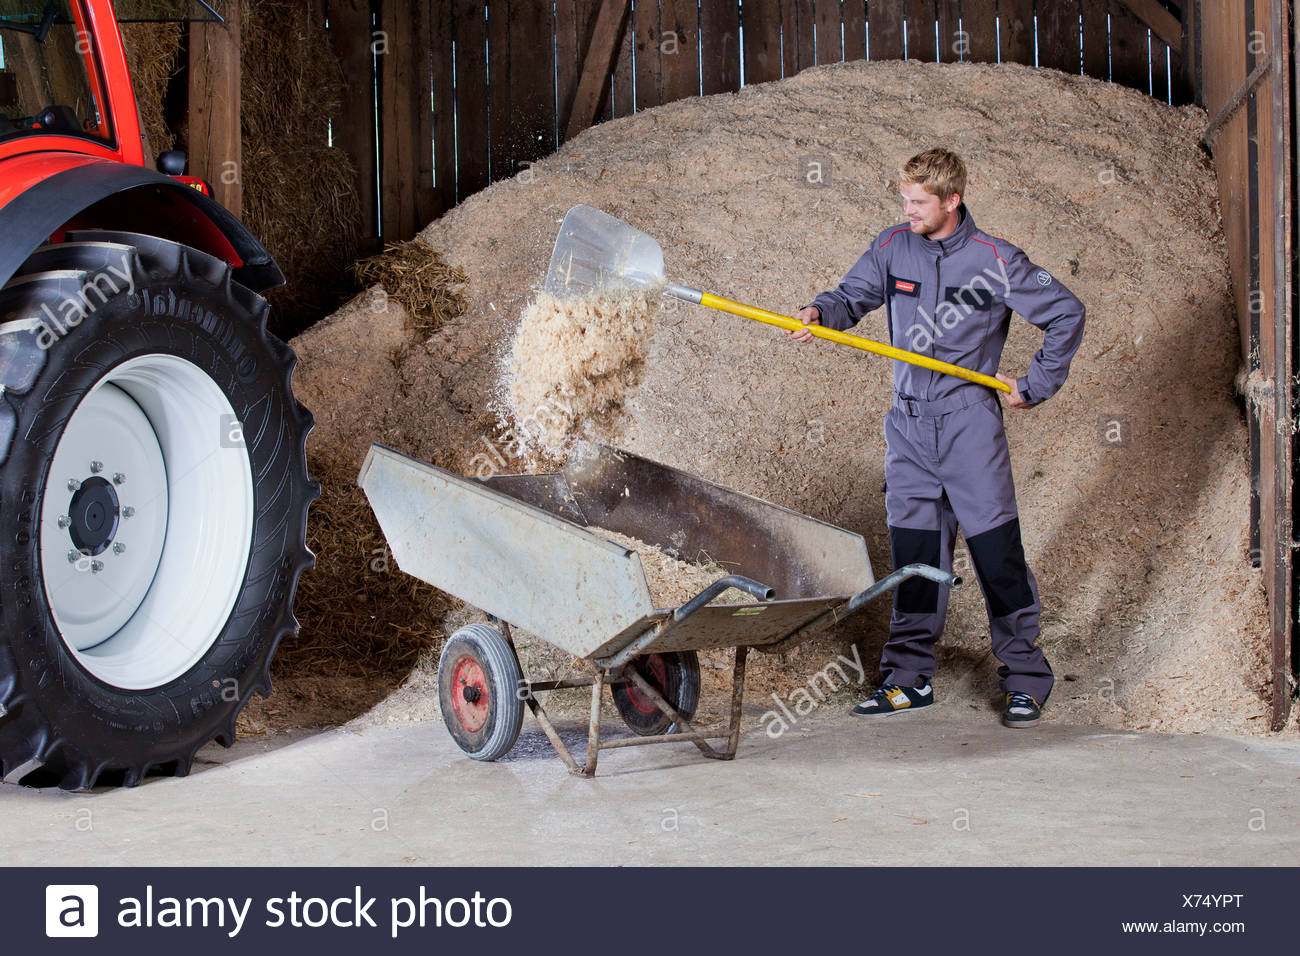 Young man shovelling sawdust into a wheelbarrow, Reith im Alpbachtal, Kufstein District, North Tirol, Tirol, Austria - Stock Image